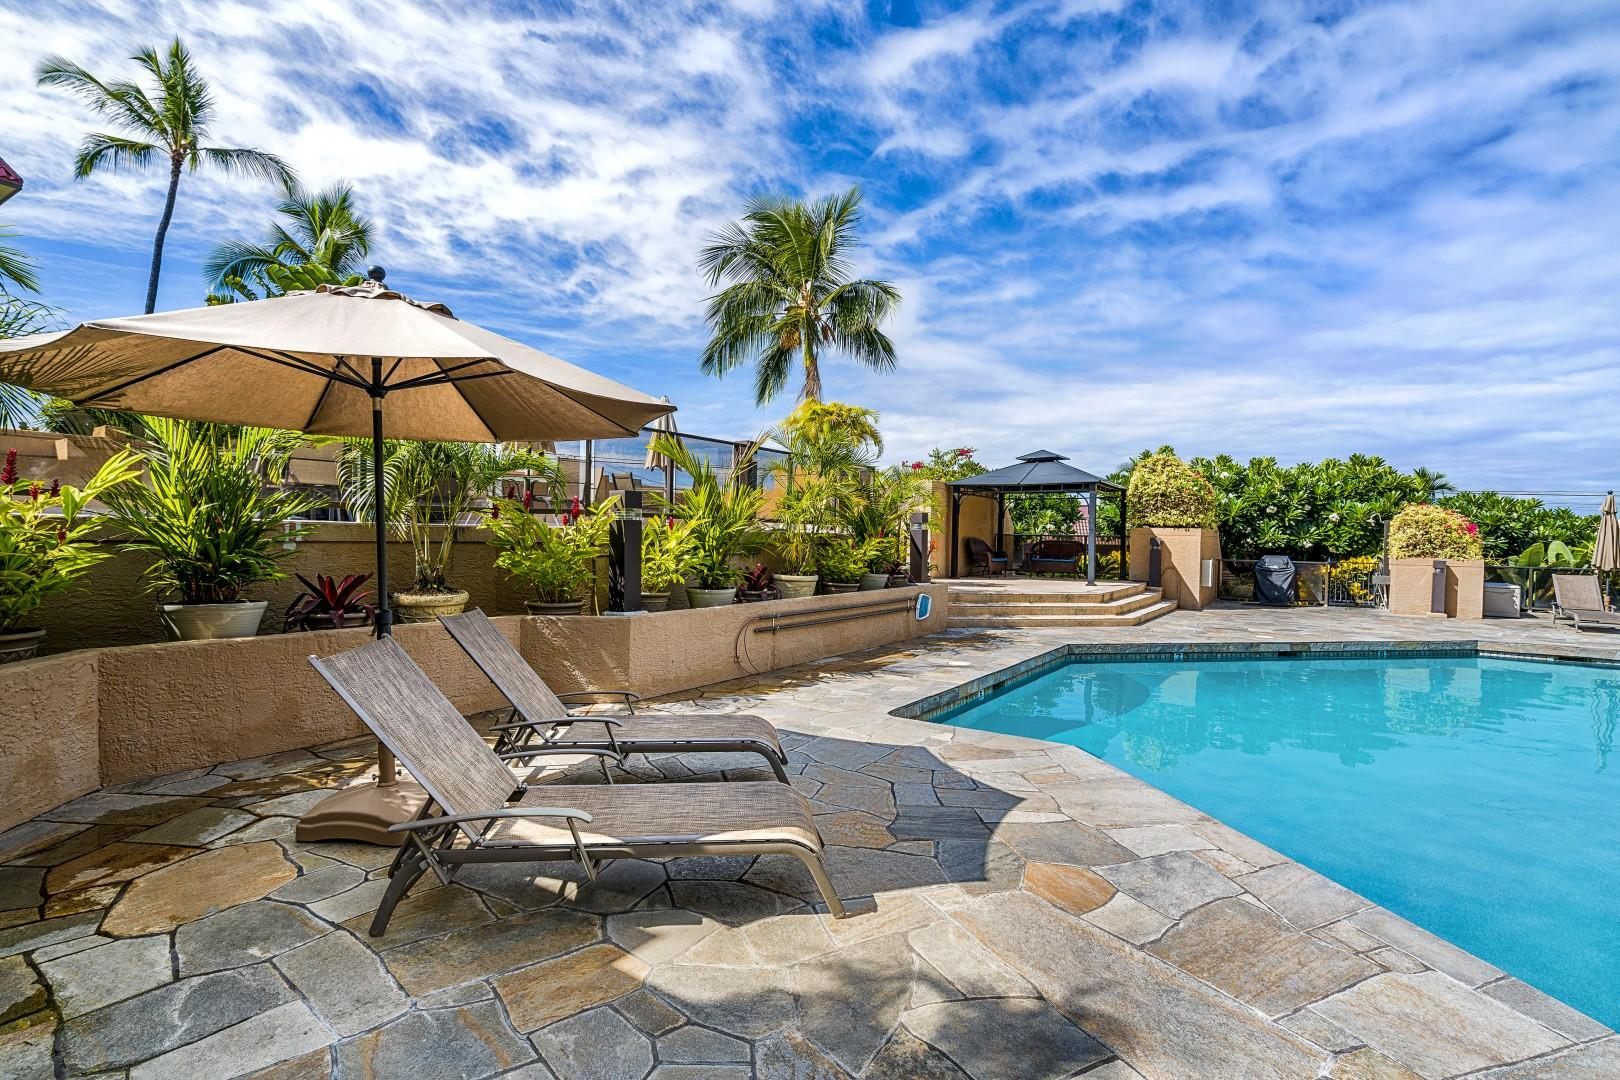 Lounge pool side to work on your tan!